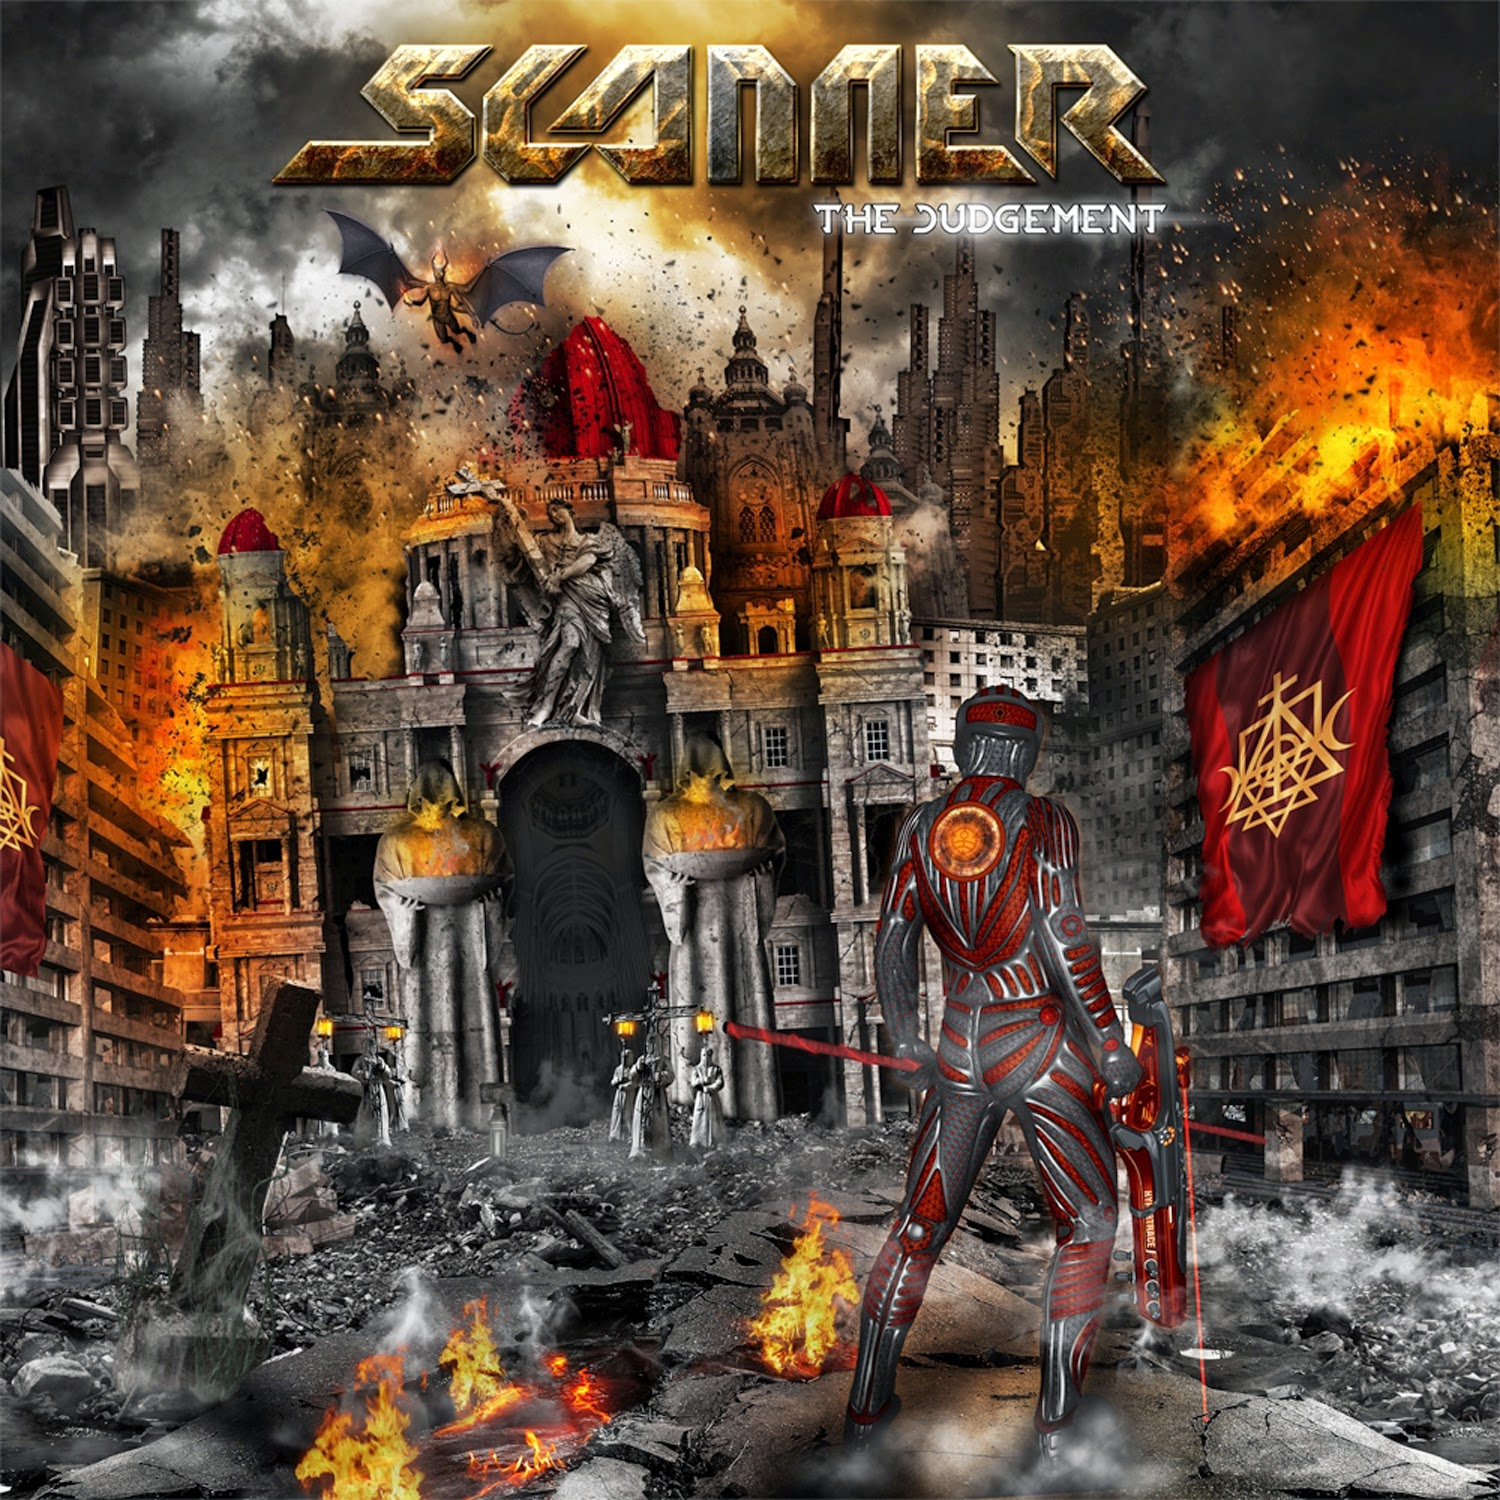 Scanner The Judgement cover